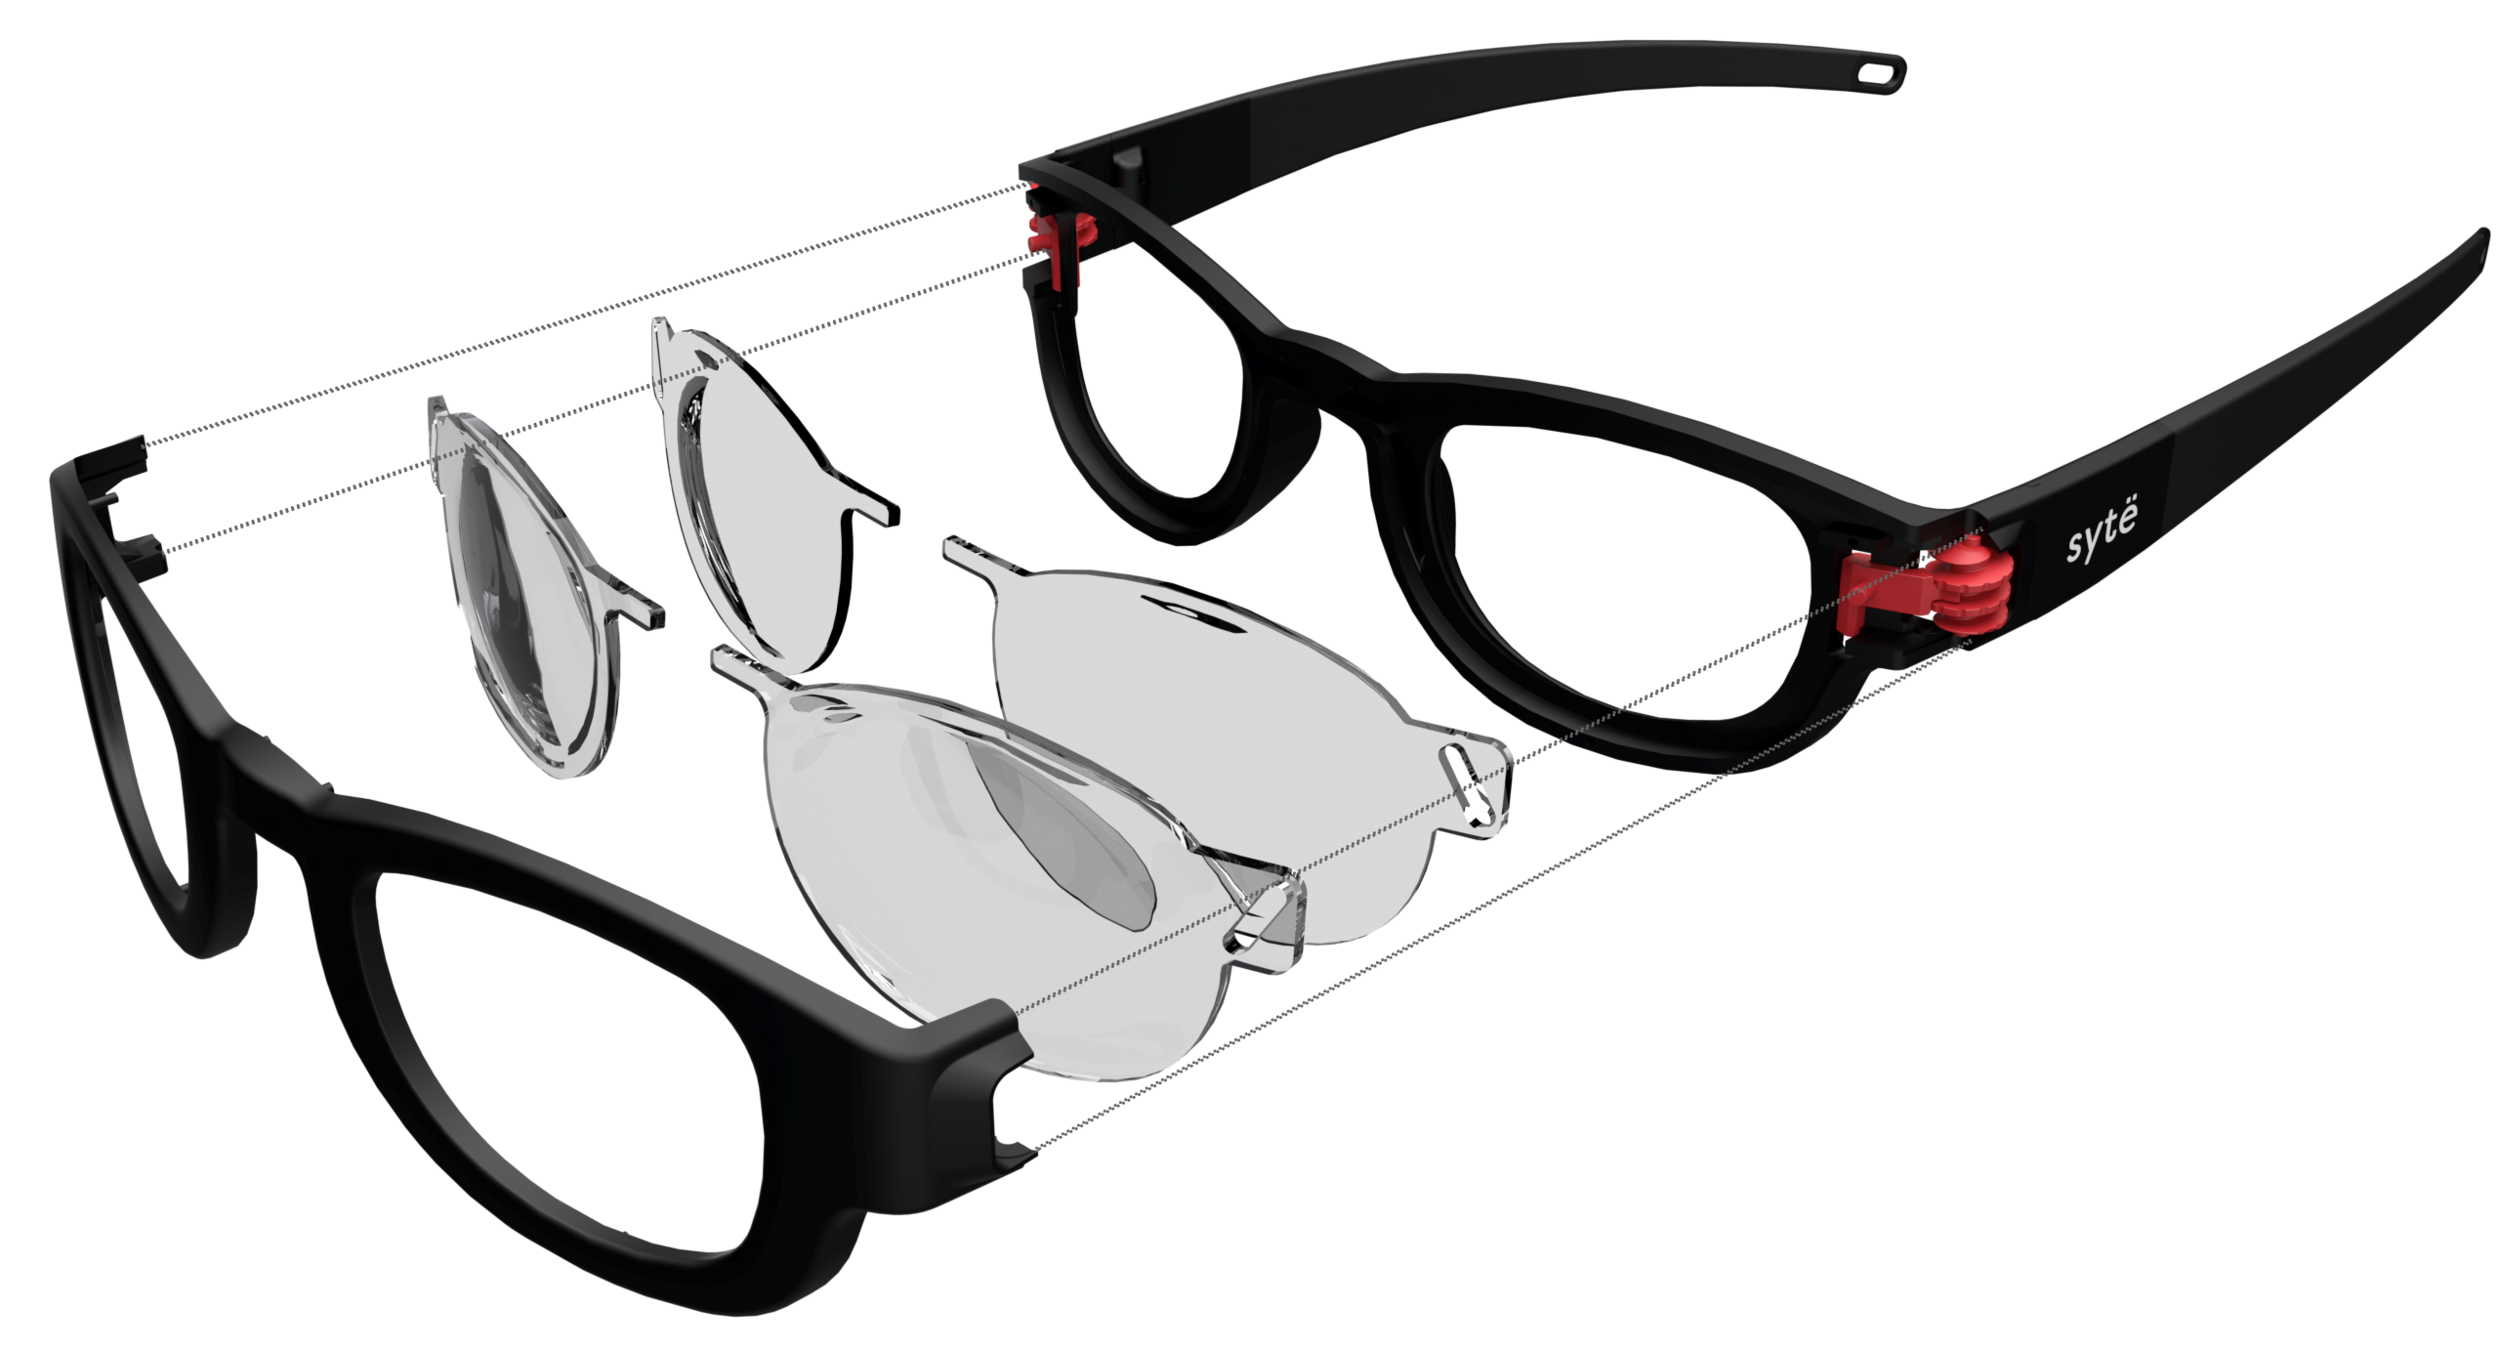 Above: exploded view of the Sytë Eyewear construction.